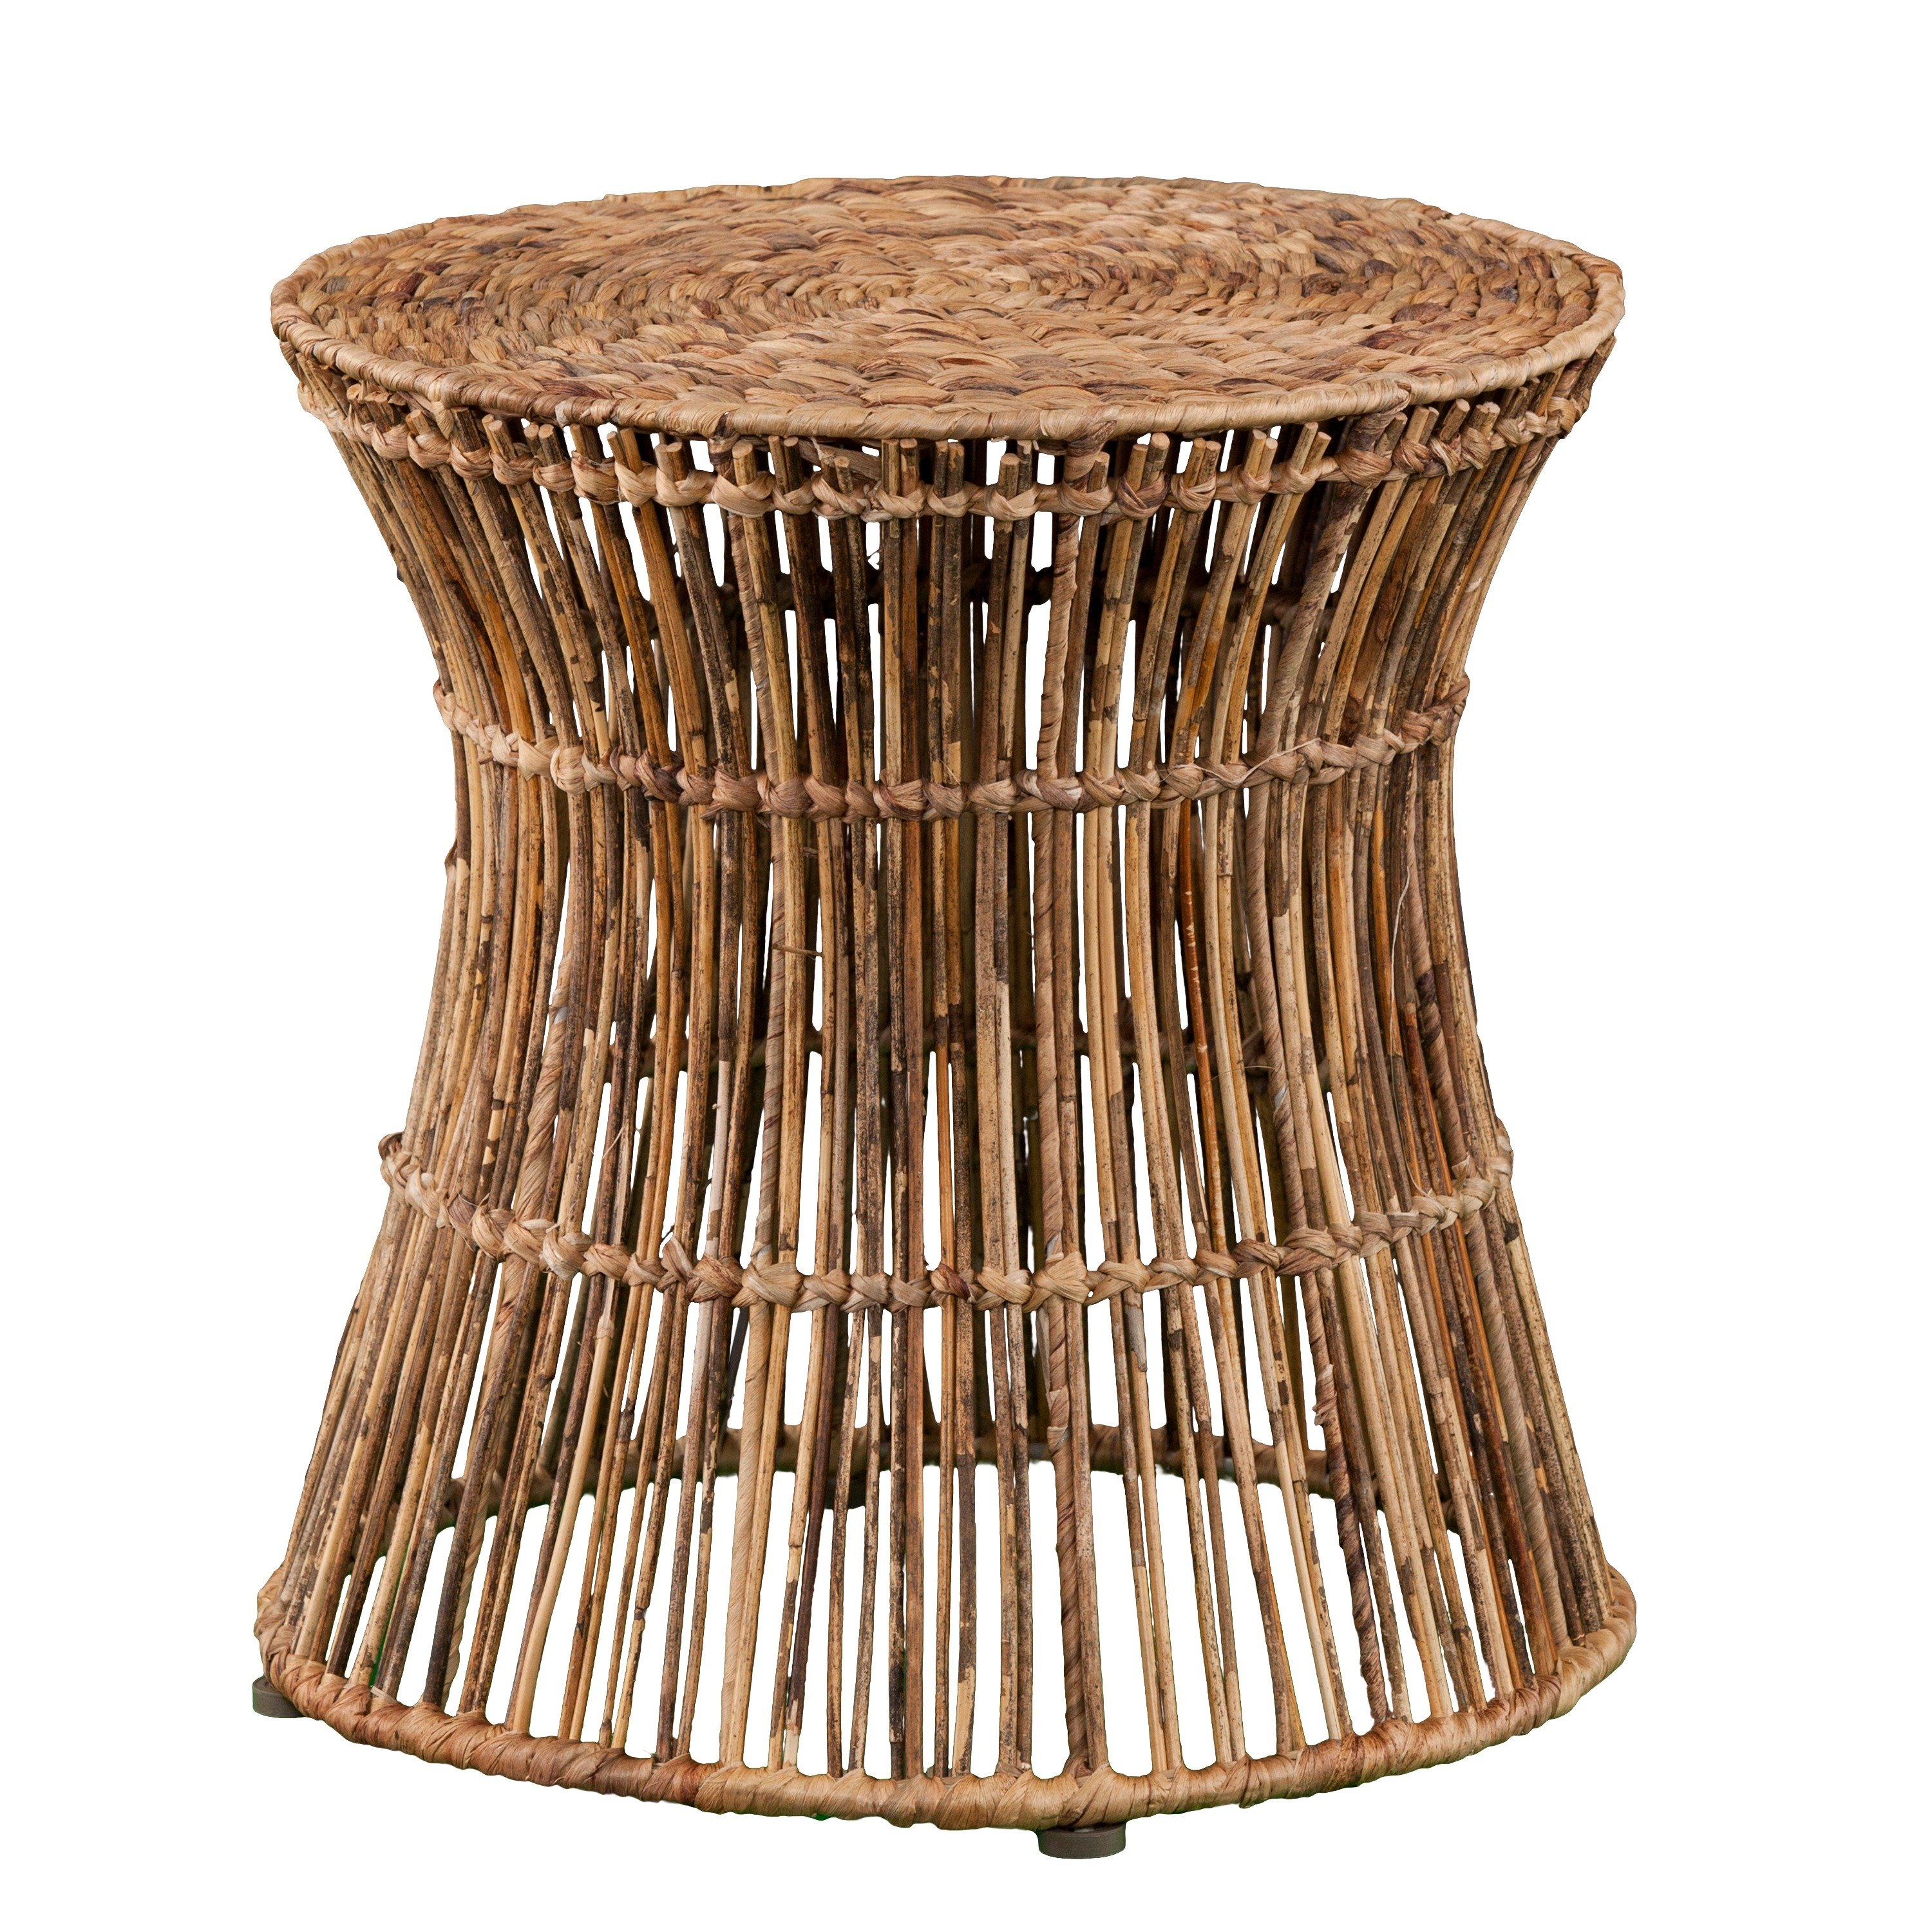 holly martin ocala hyacinth accent table stool free shipping today drop leaf desk oak nest tables ikea black dining chairs west elm sconce multi colored target round side and gold